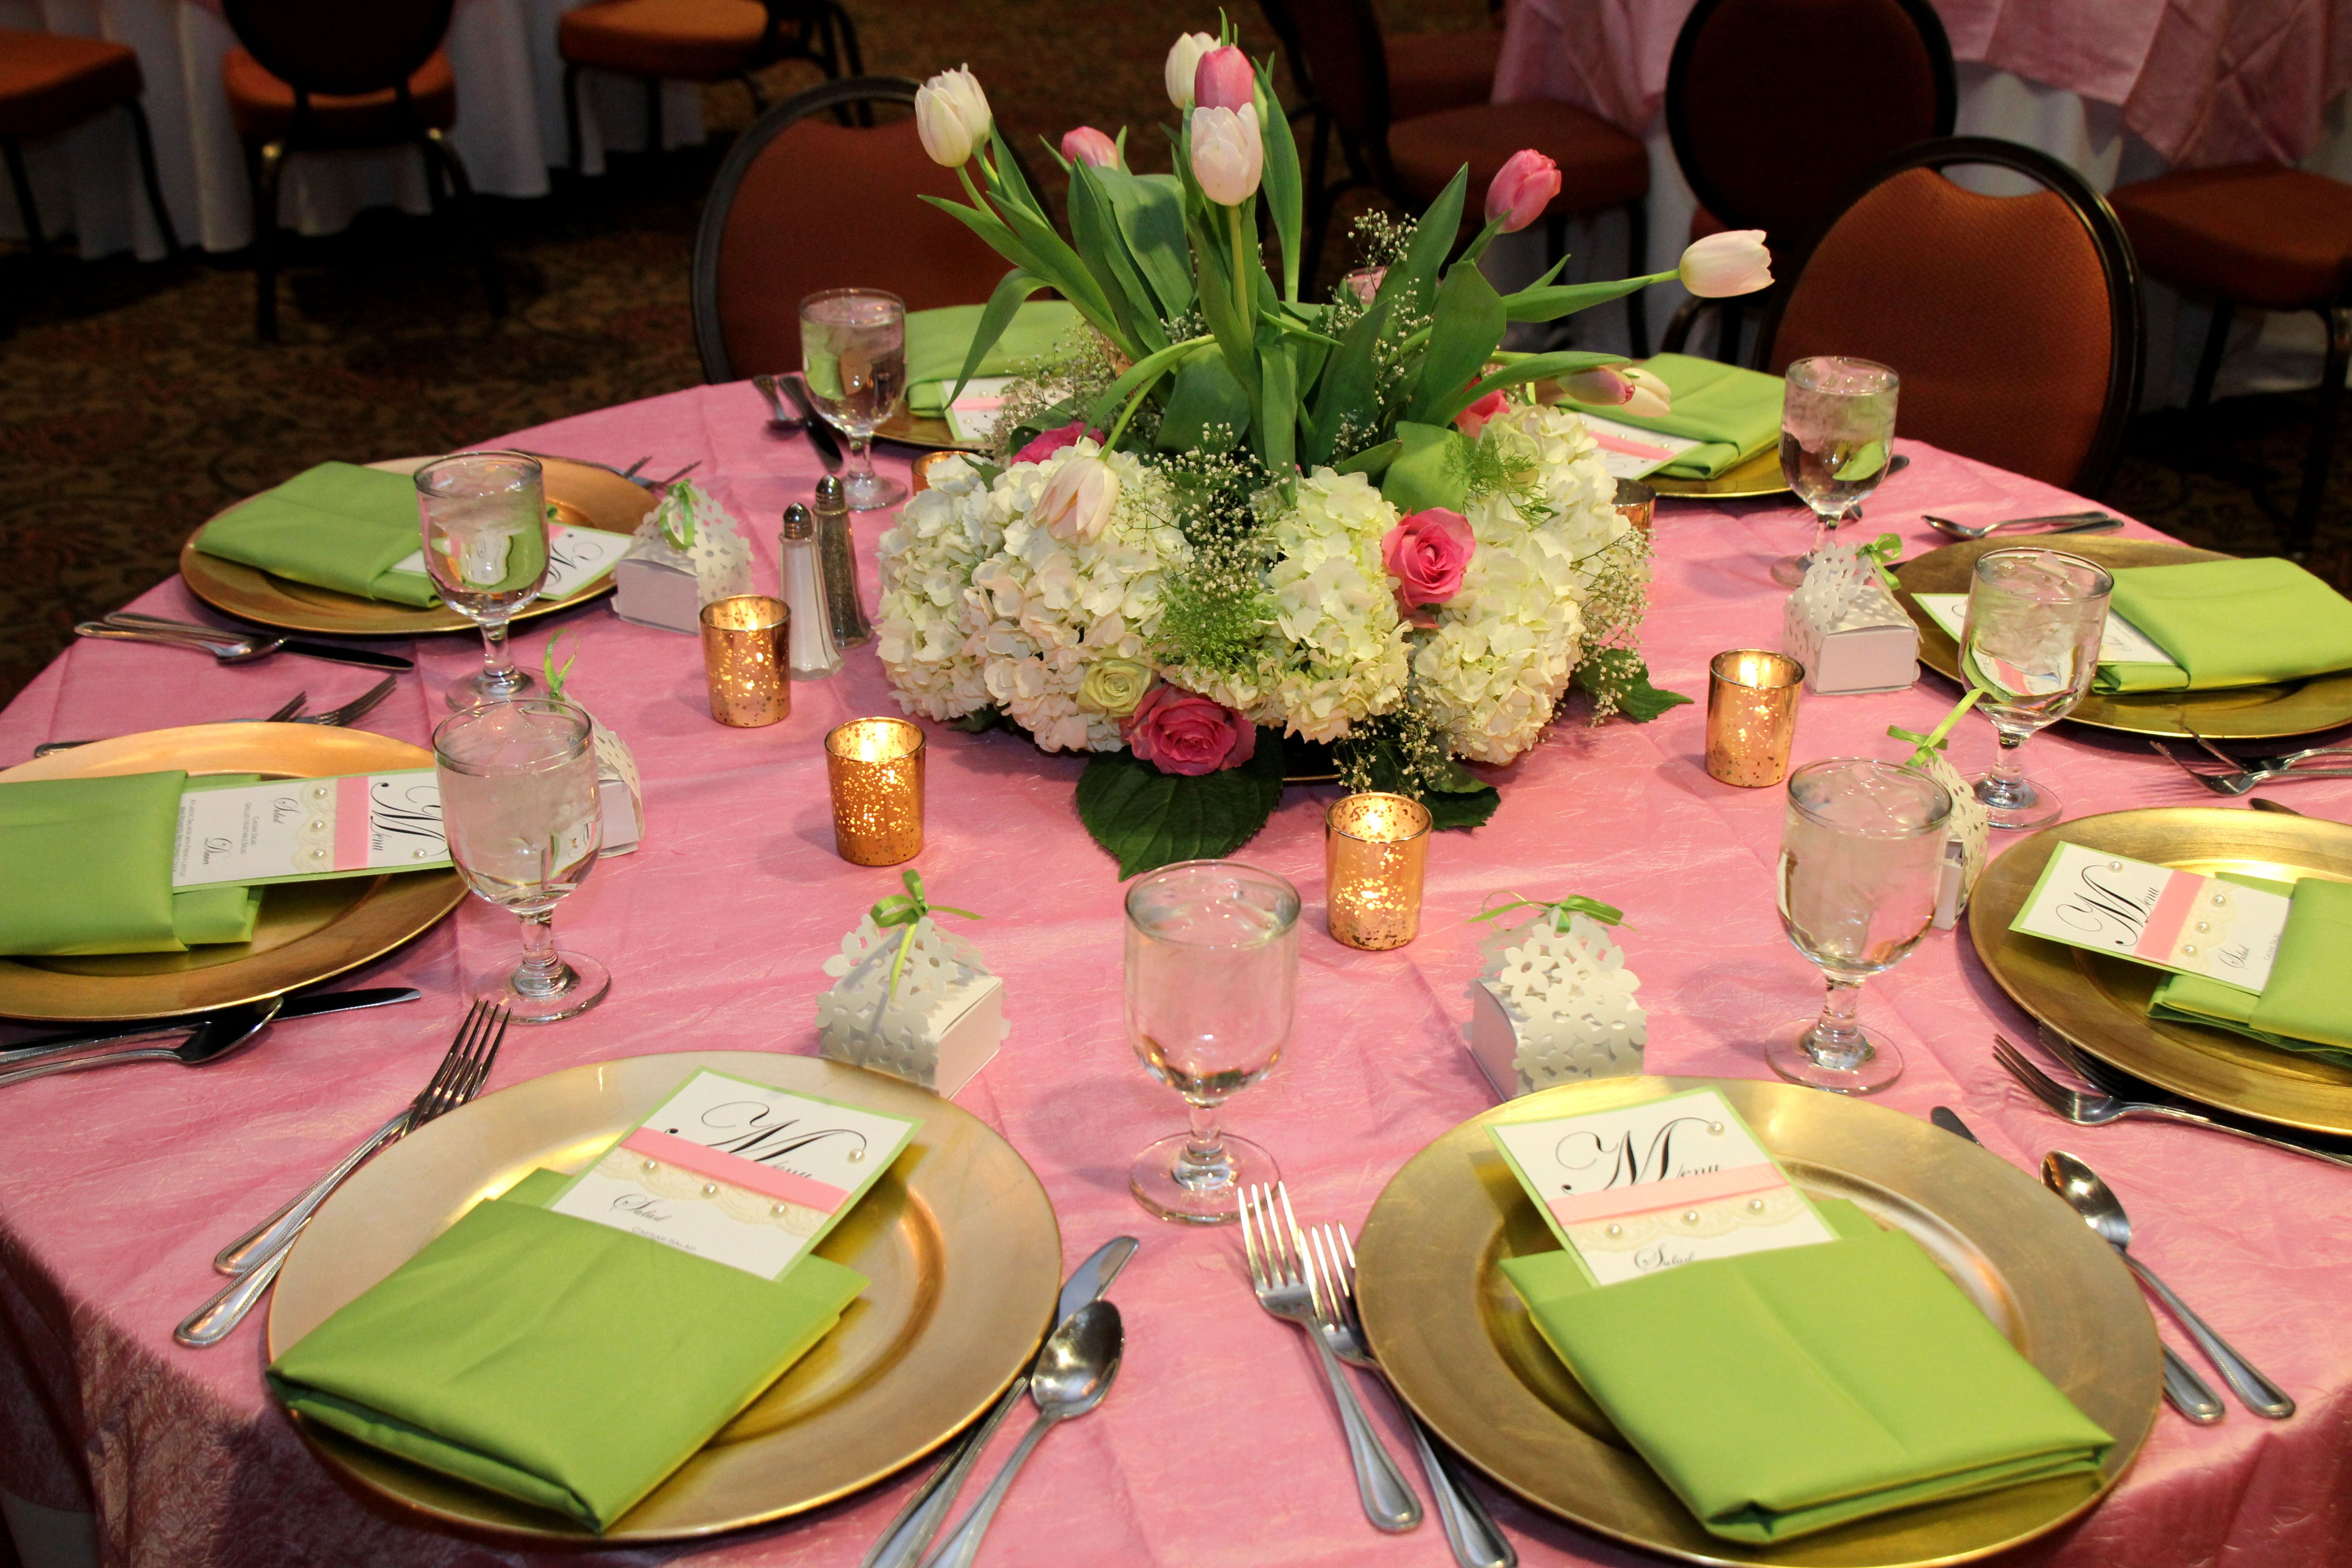 Pink and green table setting for 40th birthday party with spring